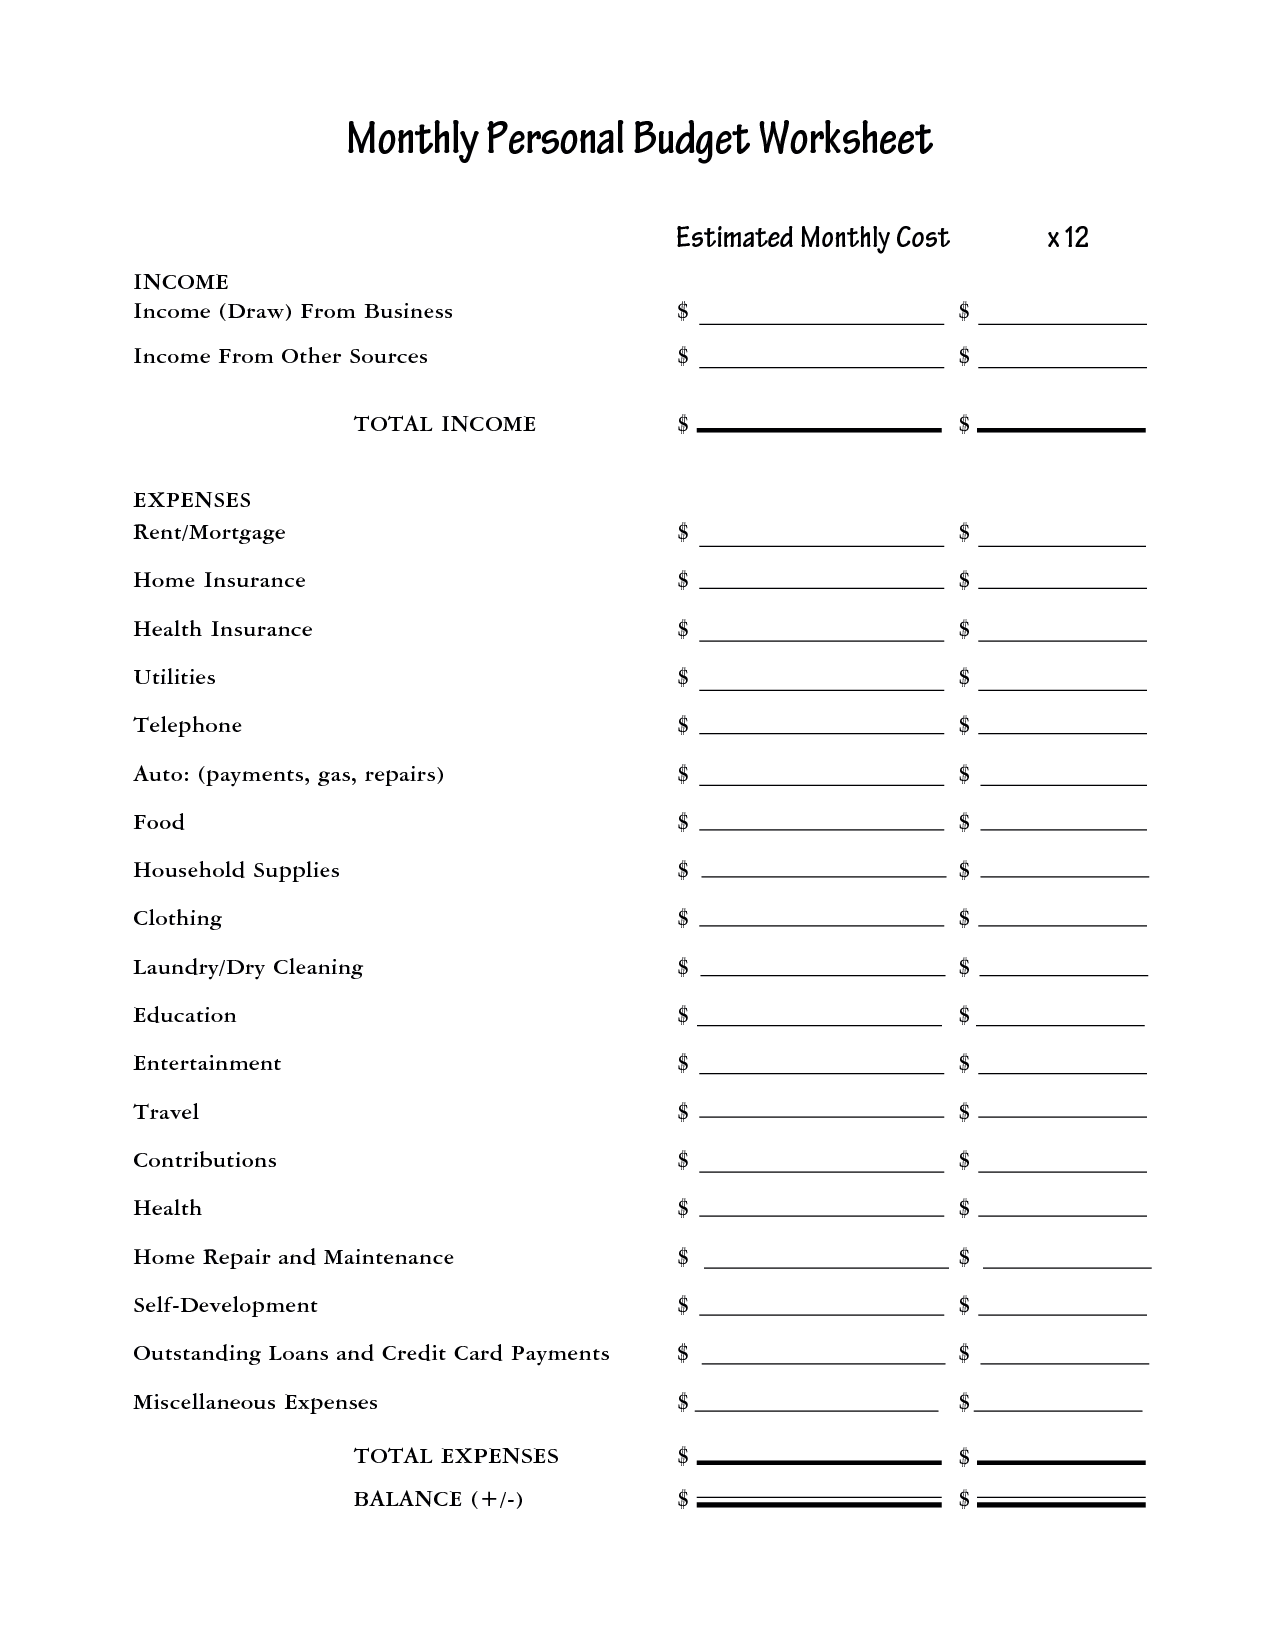 Worksheets Personal Monthly Budget Worksheet blank personal monthly budget worksheet for the home pinterest worksheet